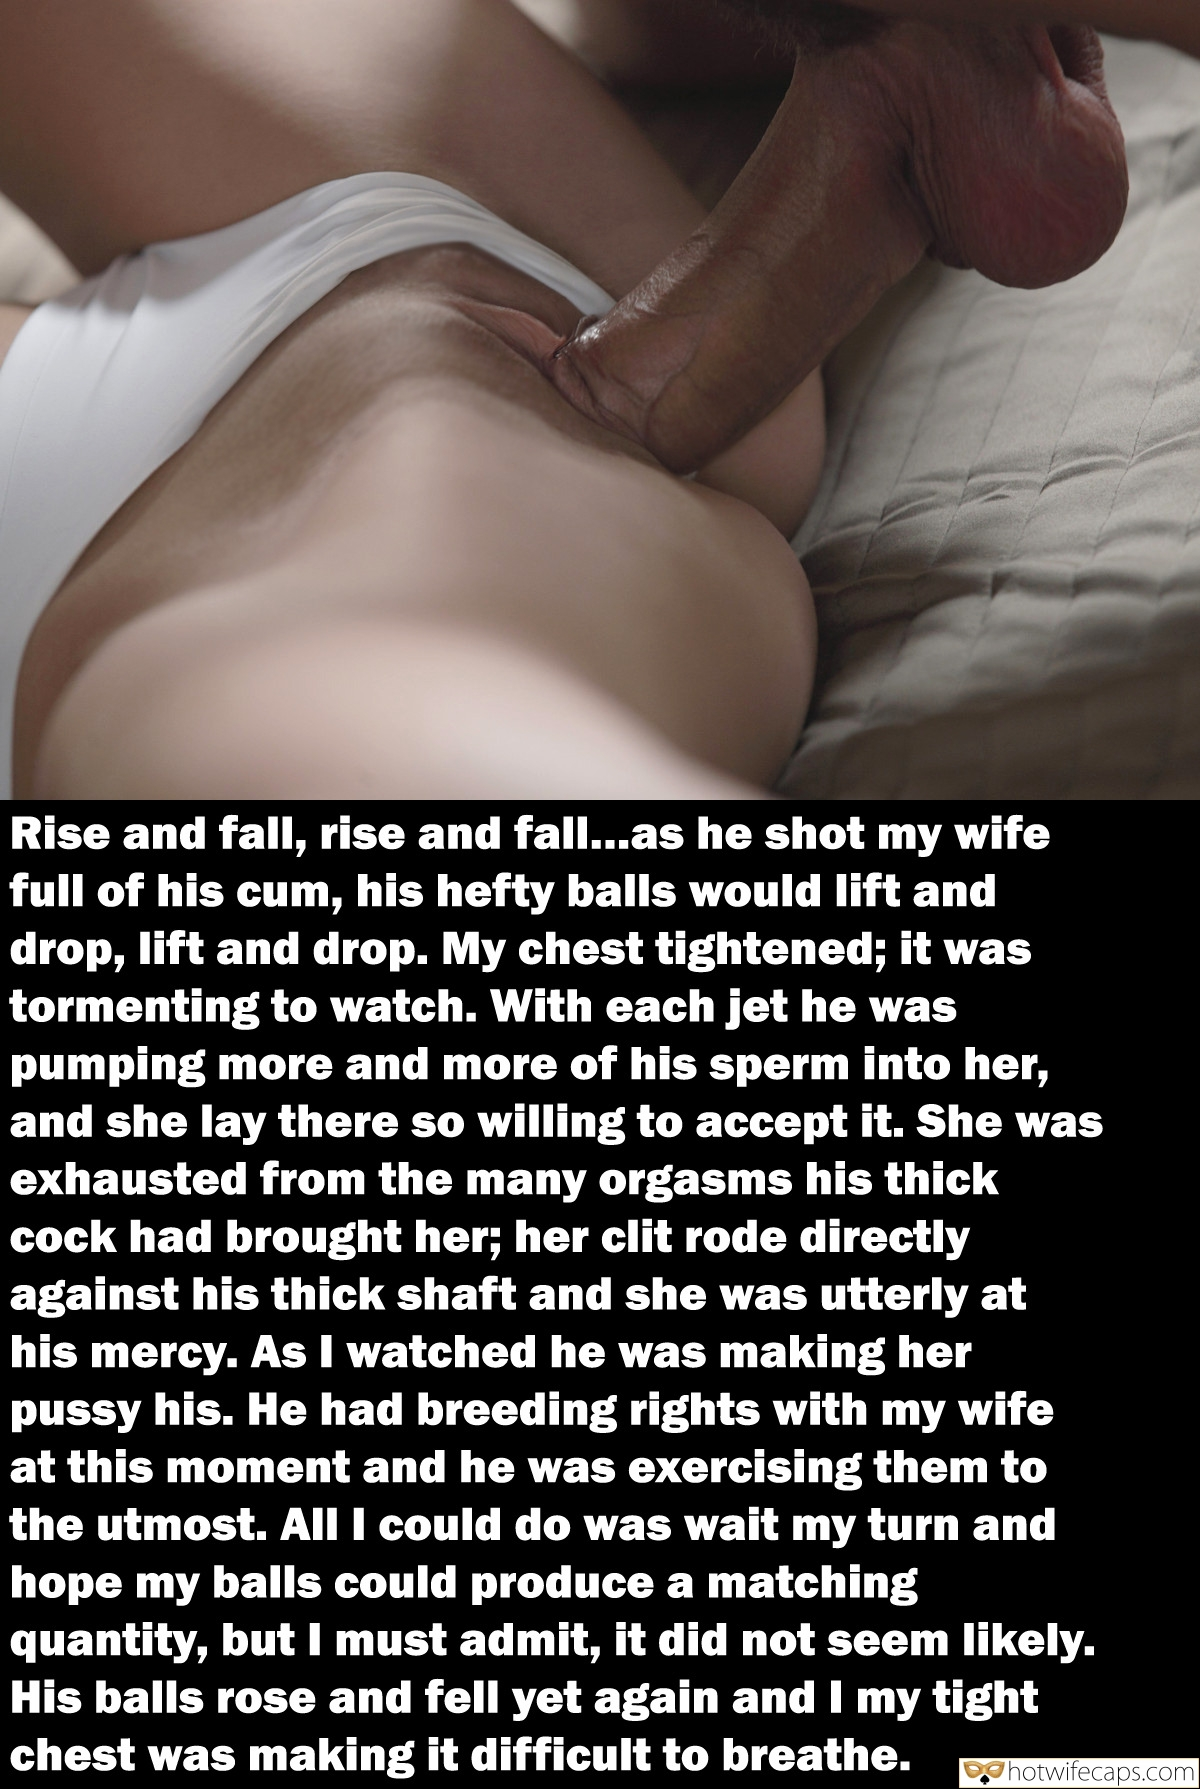 Impregnation Bull  hotwife caption: Rise and fall, rise and fall…as he shot my wife full of his cum, his hefty balls would lift and drop, lift and drop. My chest tightened; it was tormenting to watch. With each jet he was pumping more and...